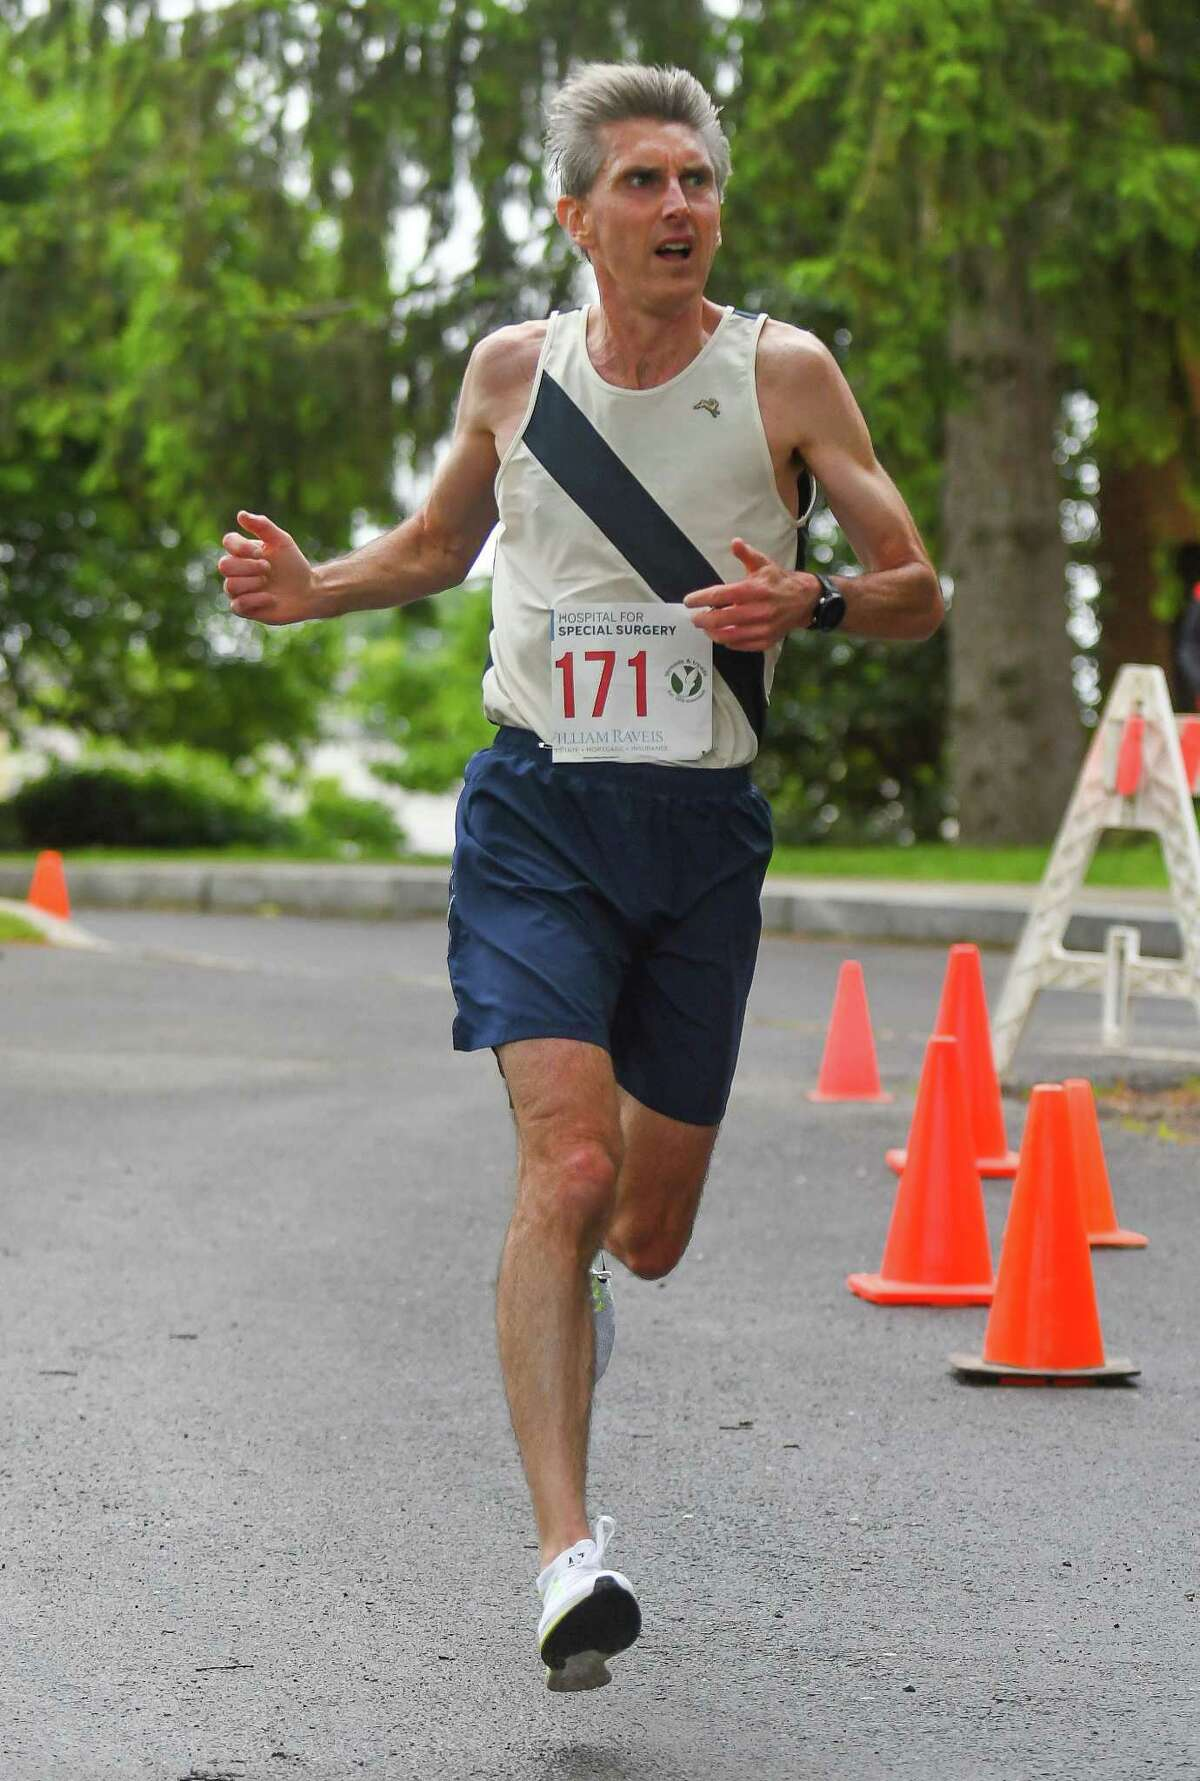 David Ott of Darien was the overall second-place finisher of the 53rd Annual Jim Fixx Memorial Day Race on May 29 in Greenwich.